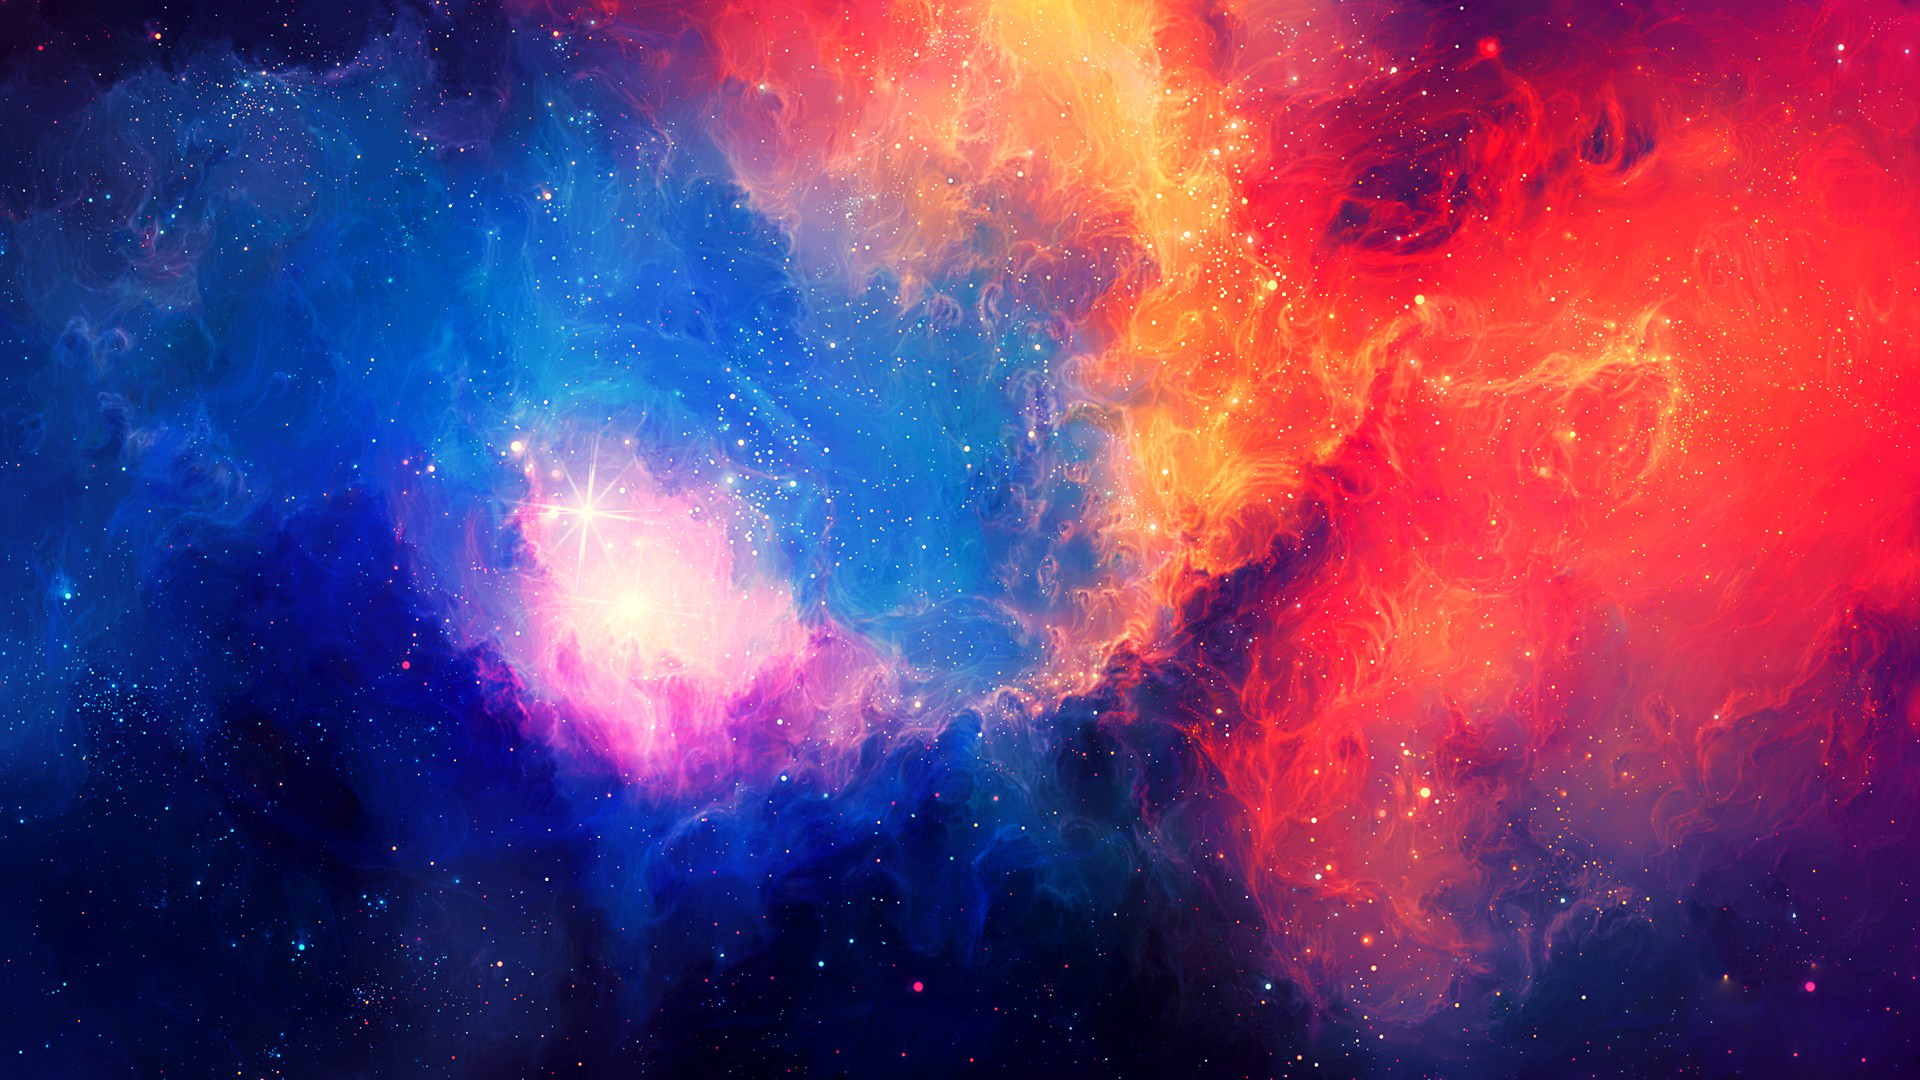 Color Wall Paper Wallpaper Hd 4k Tumblr Free Pages 1920x1080